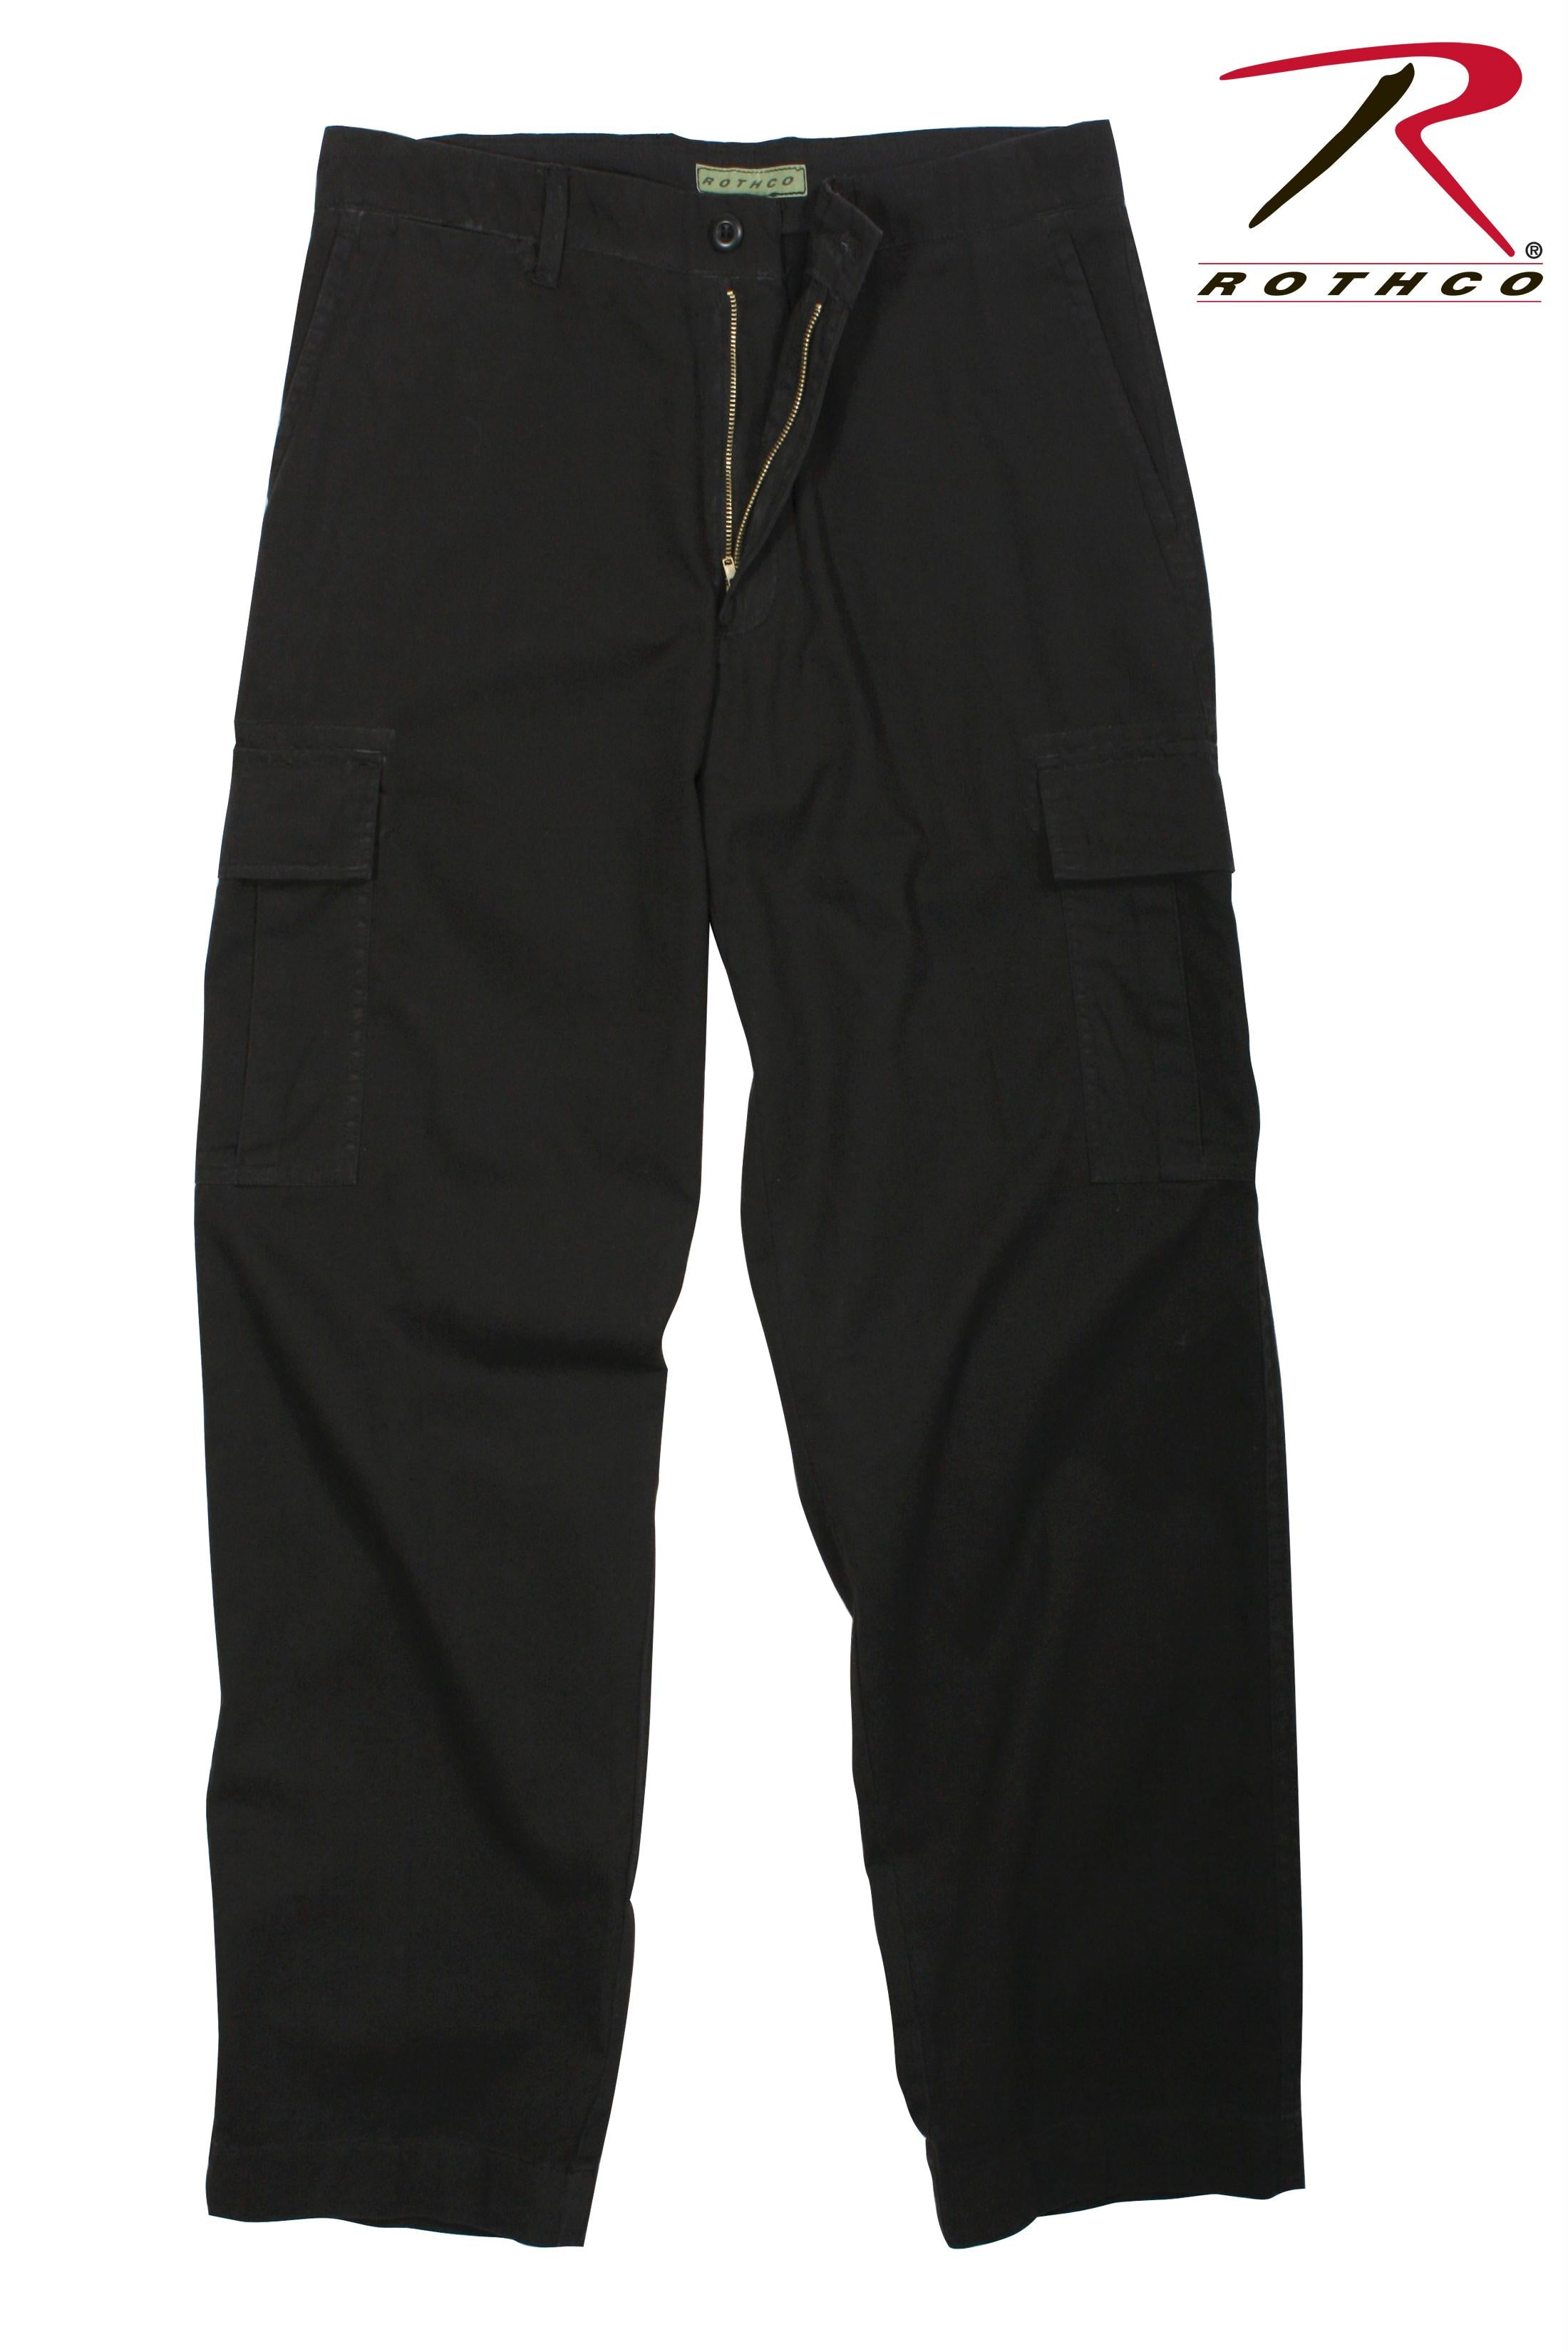 Rothco Vintage 6-Pocket Flat Front Fatigue Pants - Black / 42